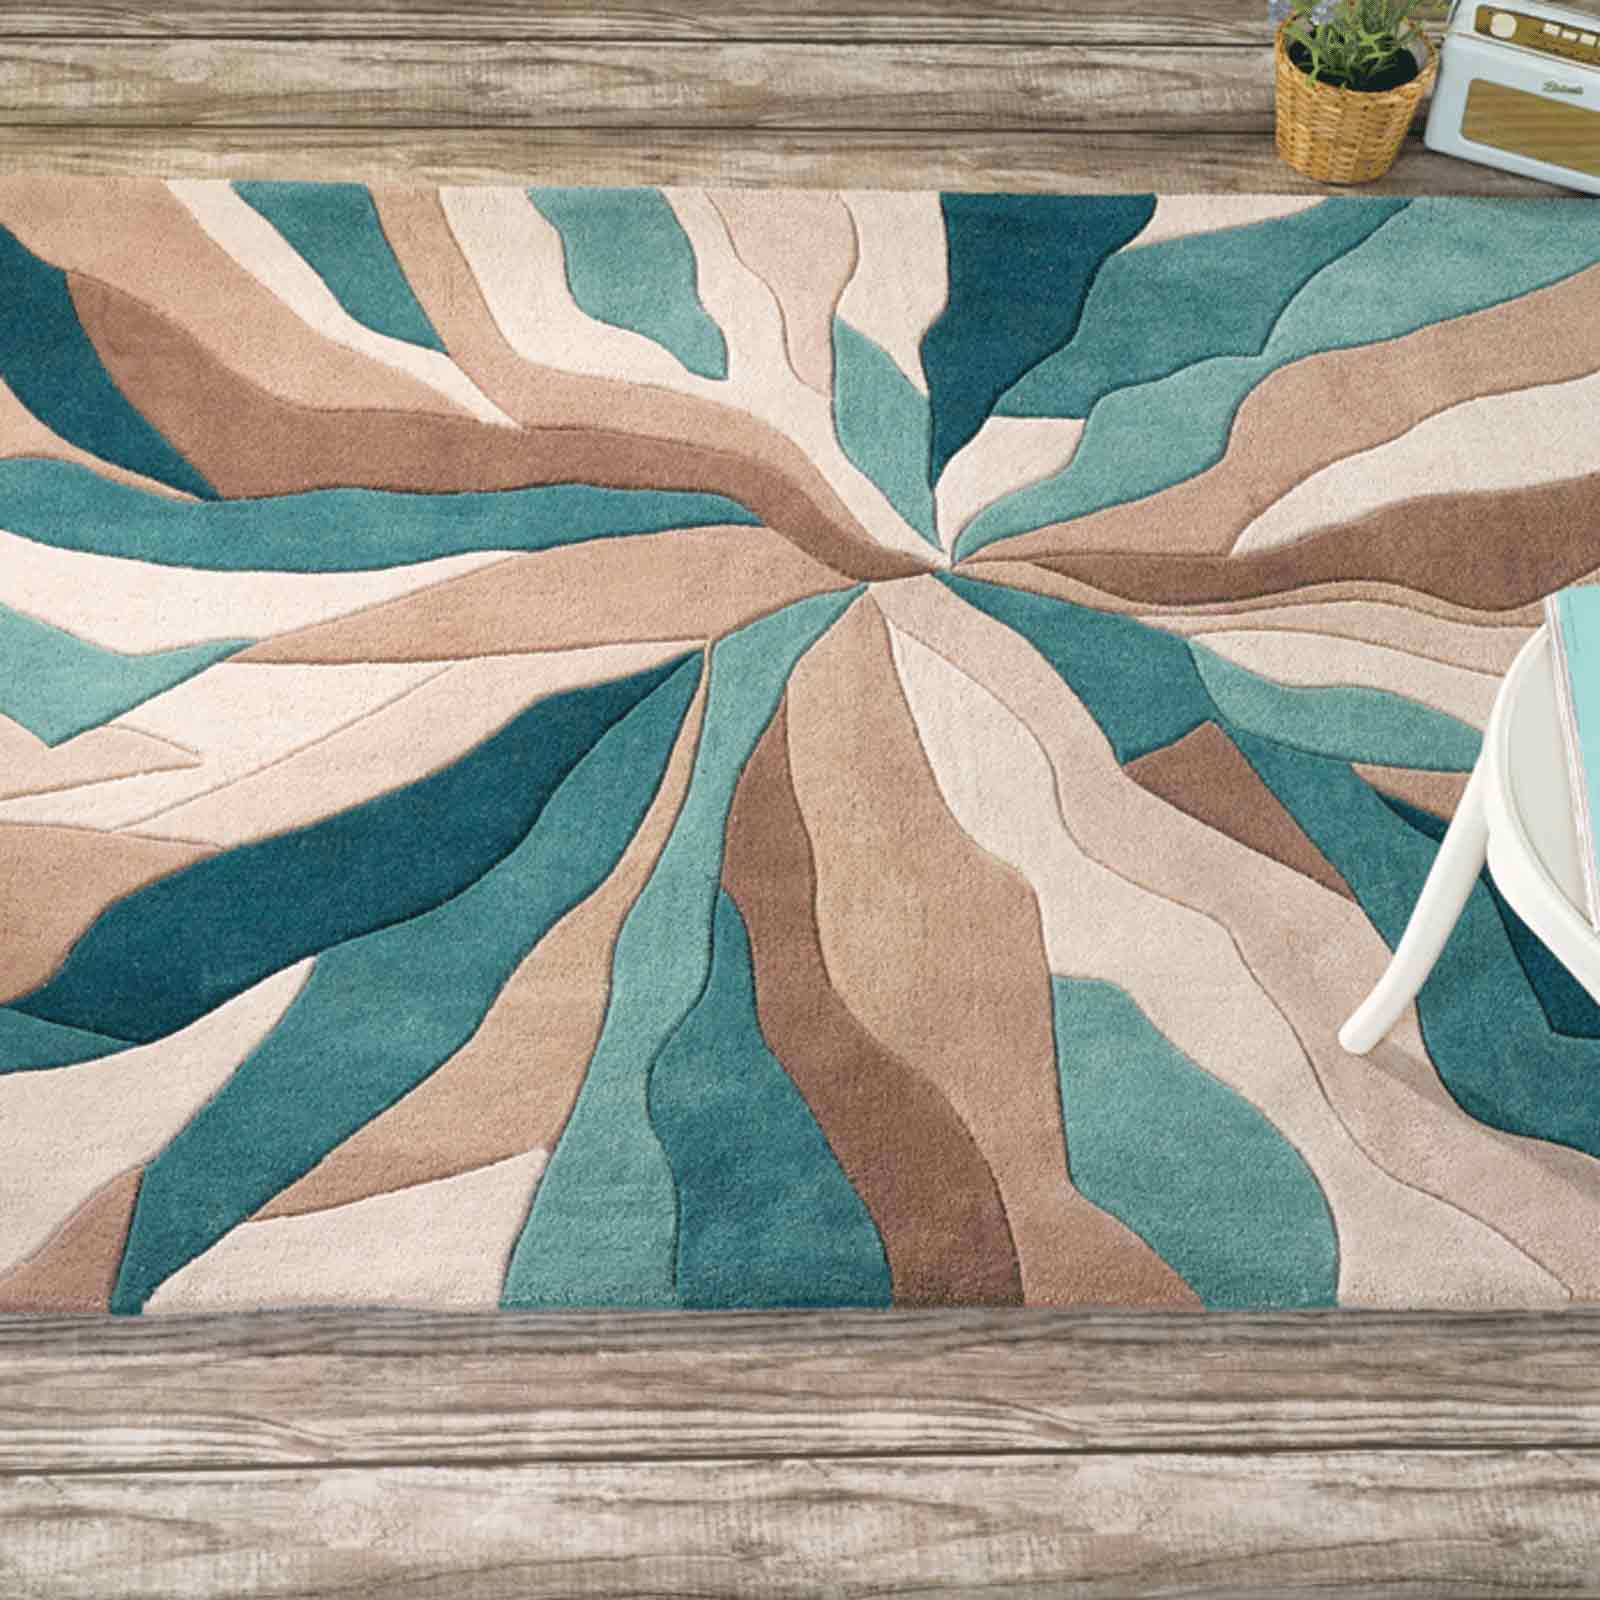 teal rugs infinite splinter rugs in teal FRHHSYP